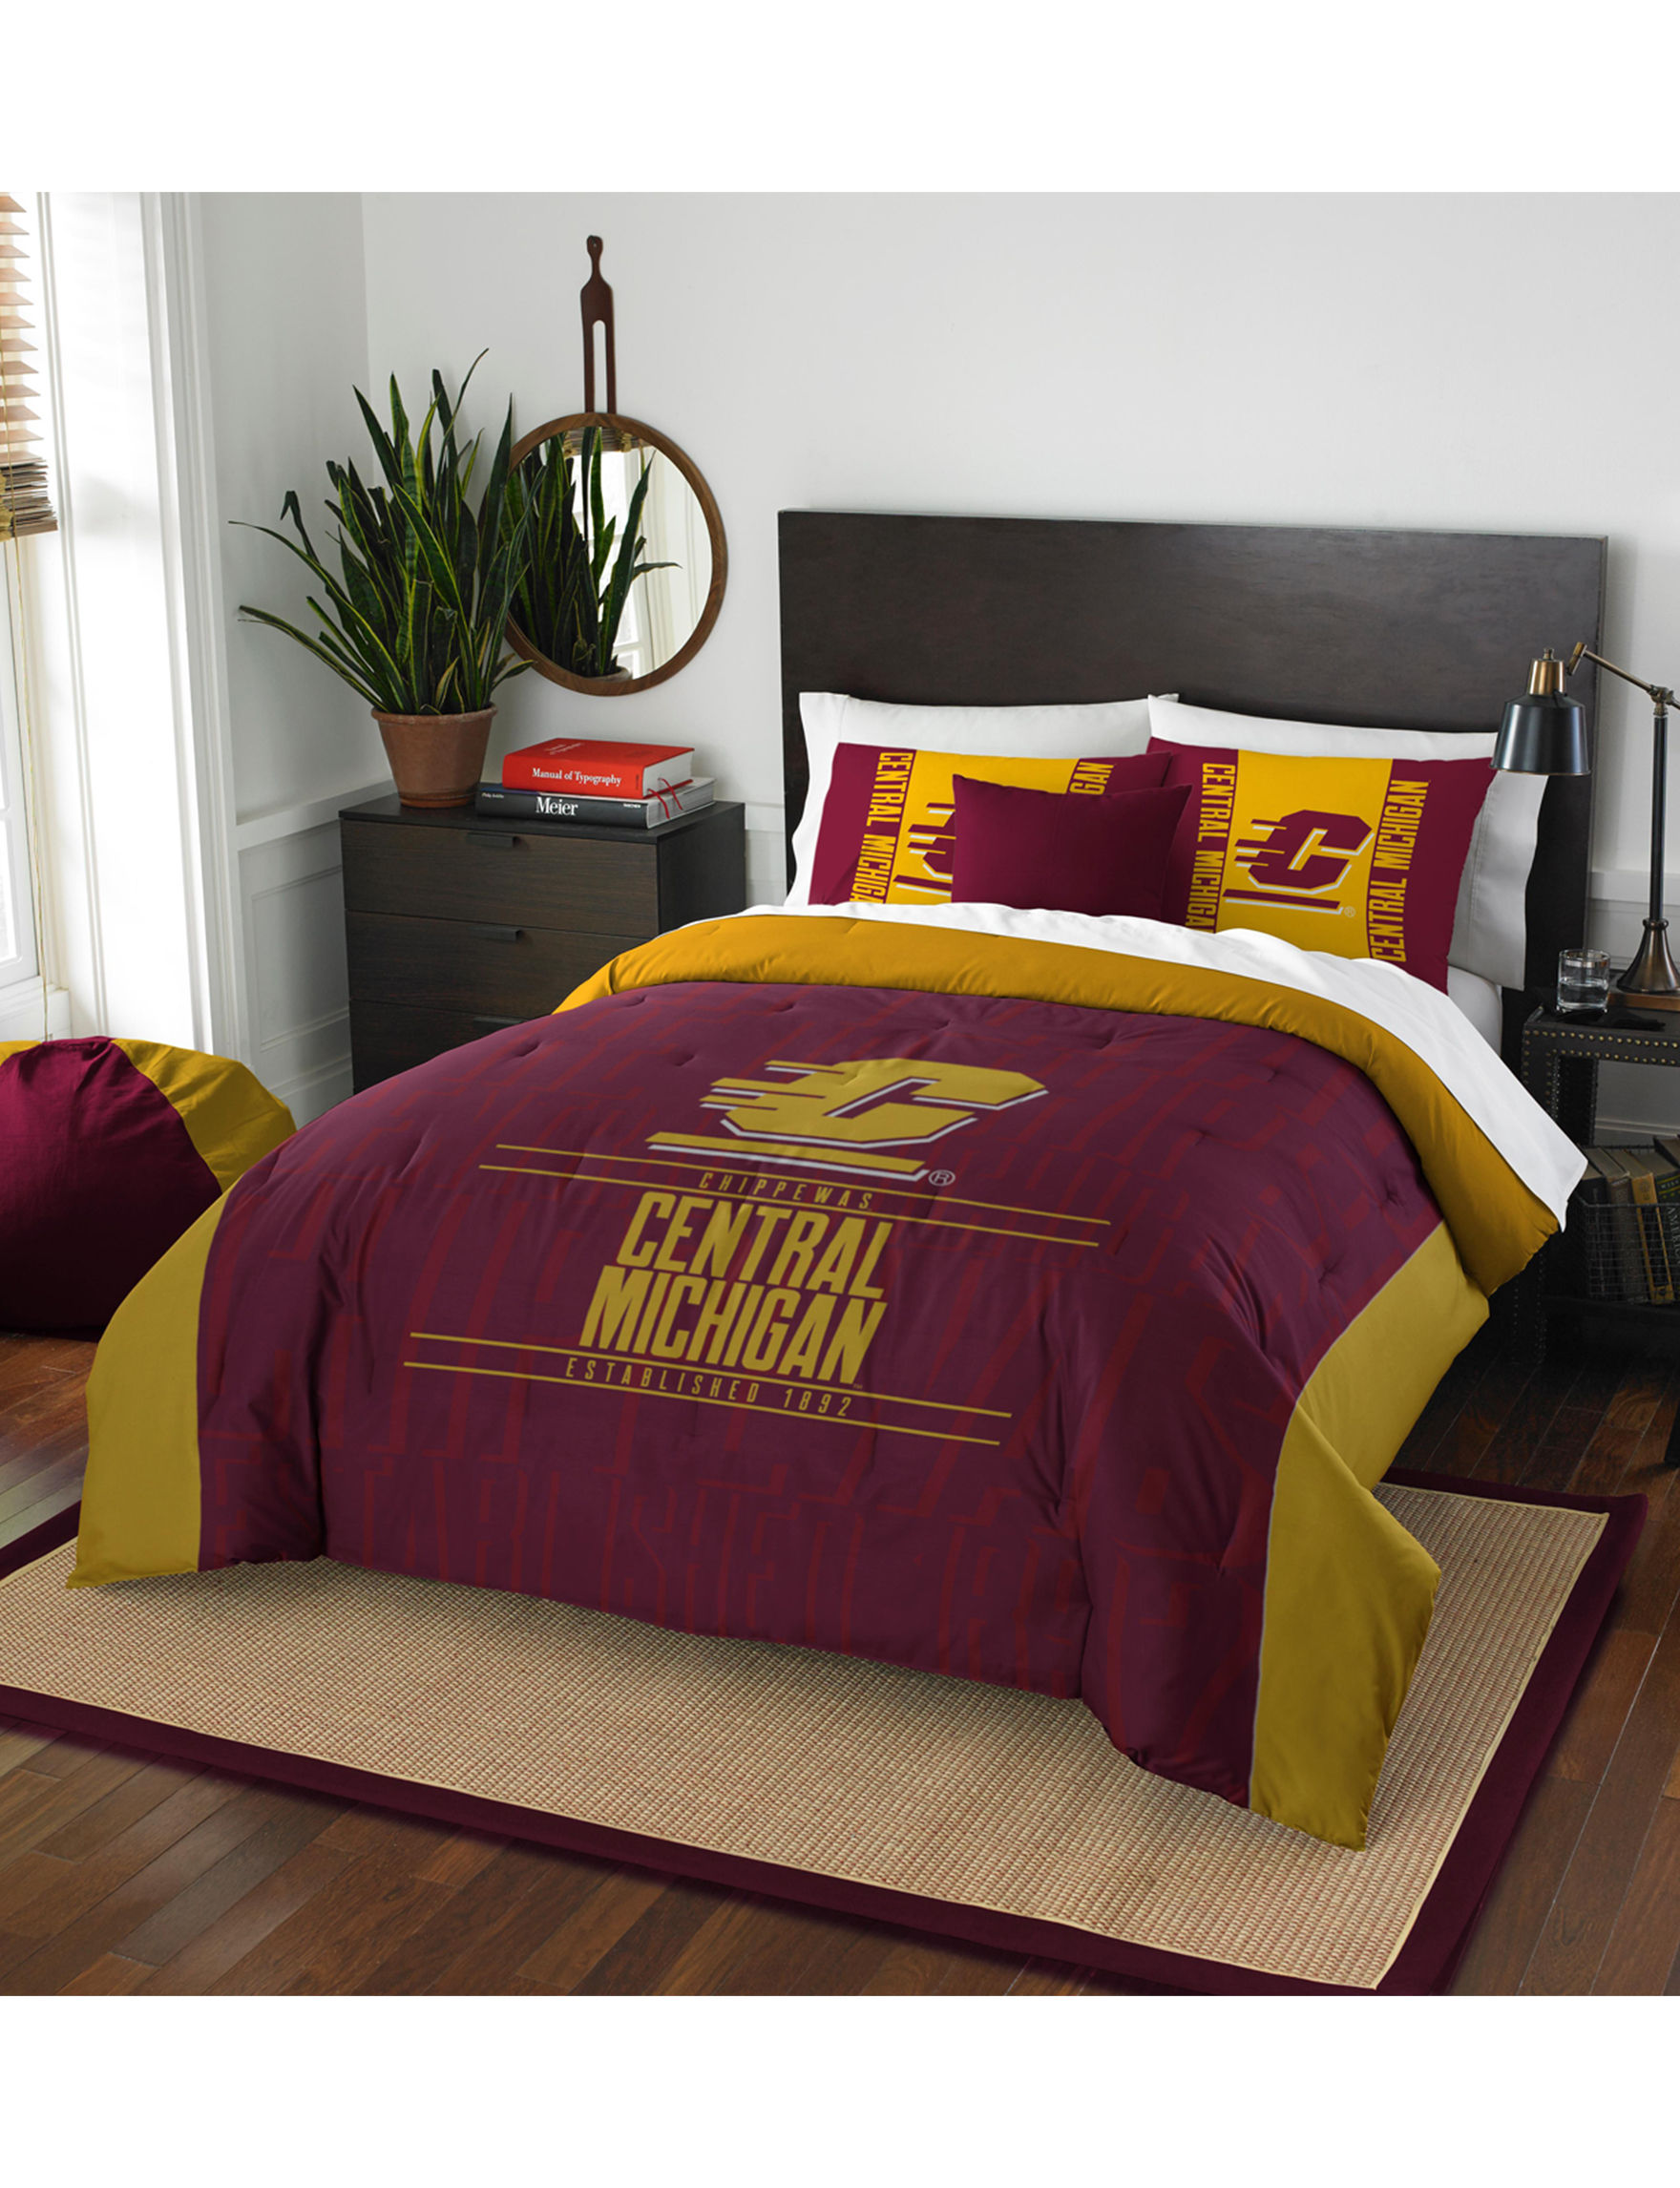 The Northwest Company Multi Comforters & Comforter Sets